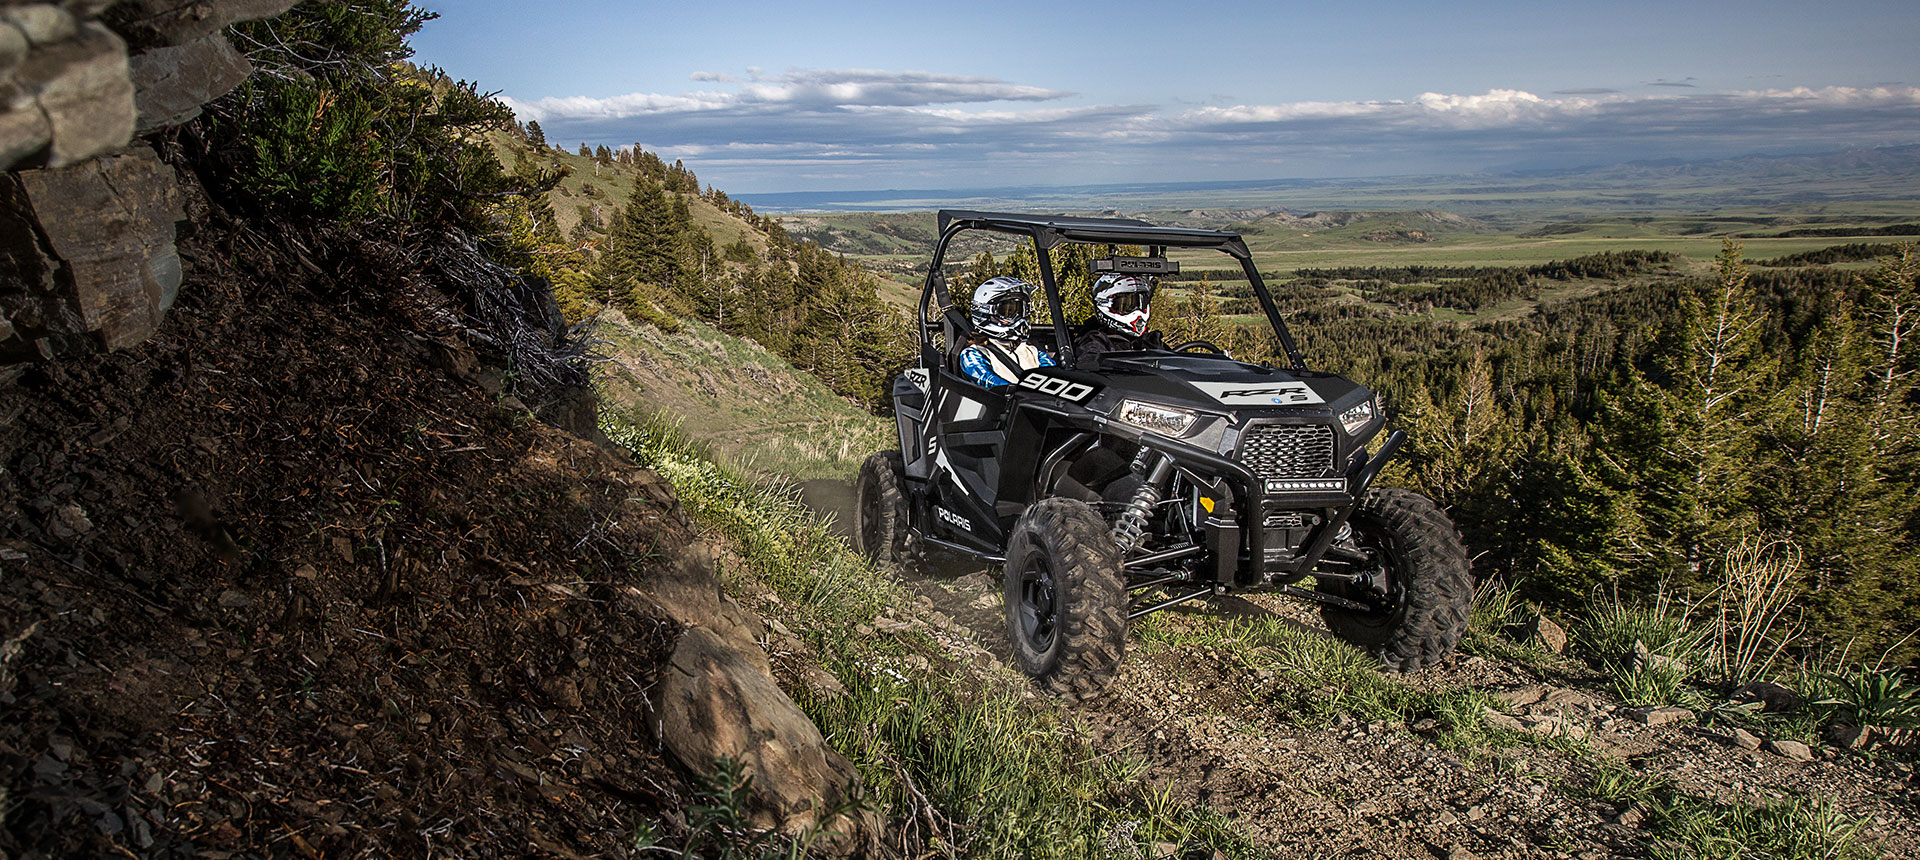 2019 Polaris RZR S 900 EPS in Chanute, Kansas - Photo 4